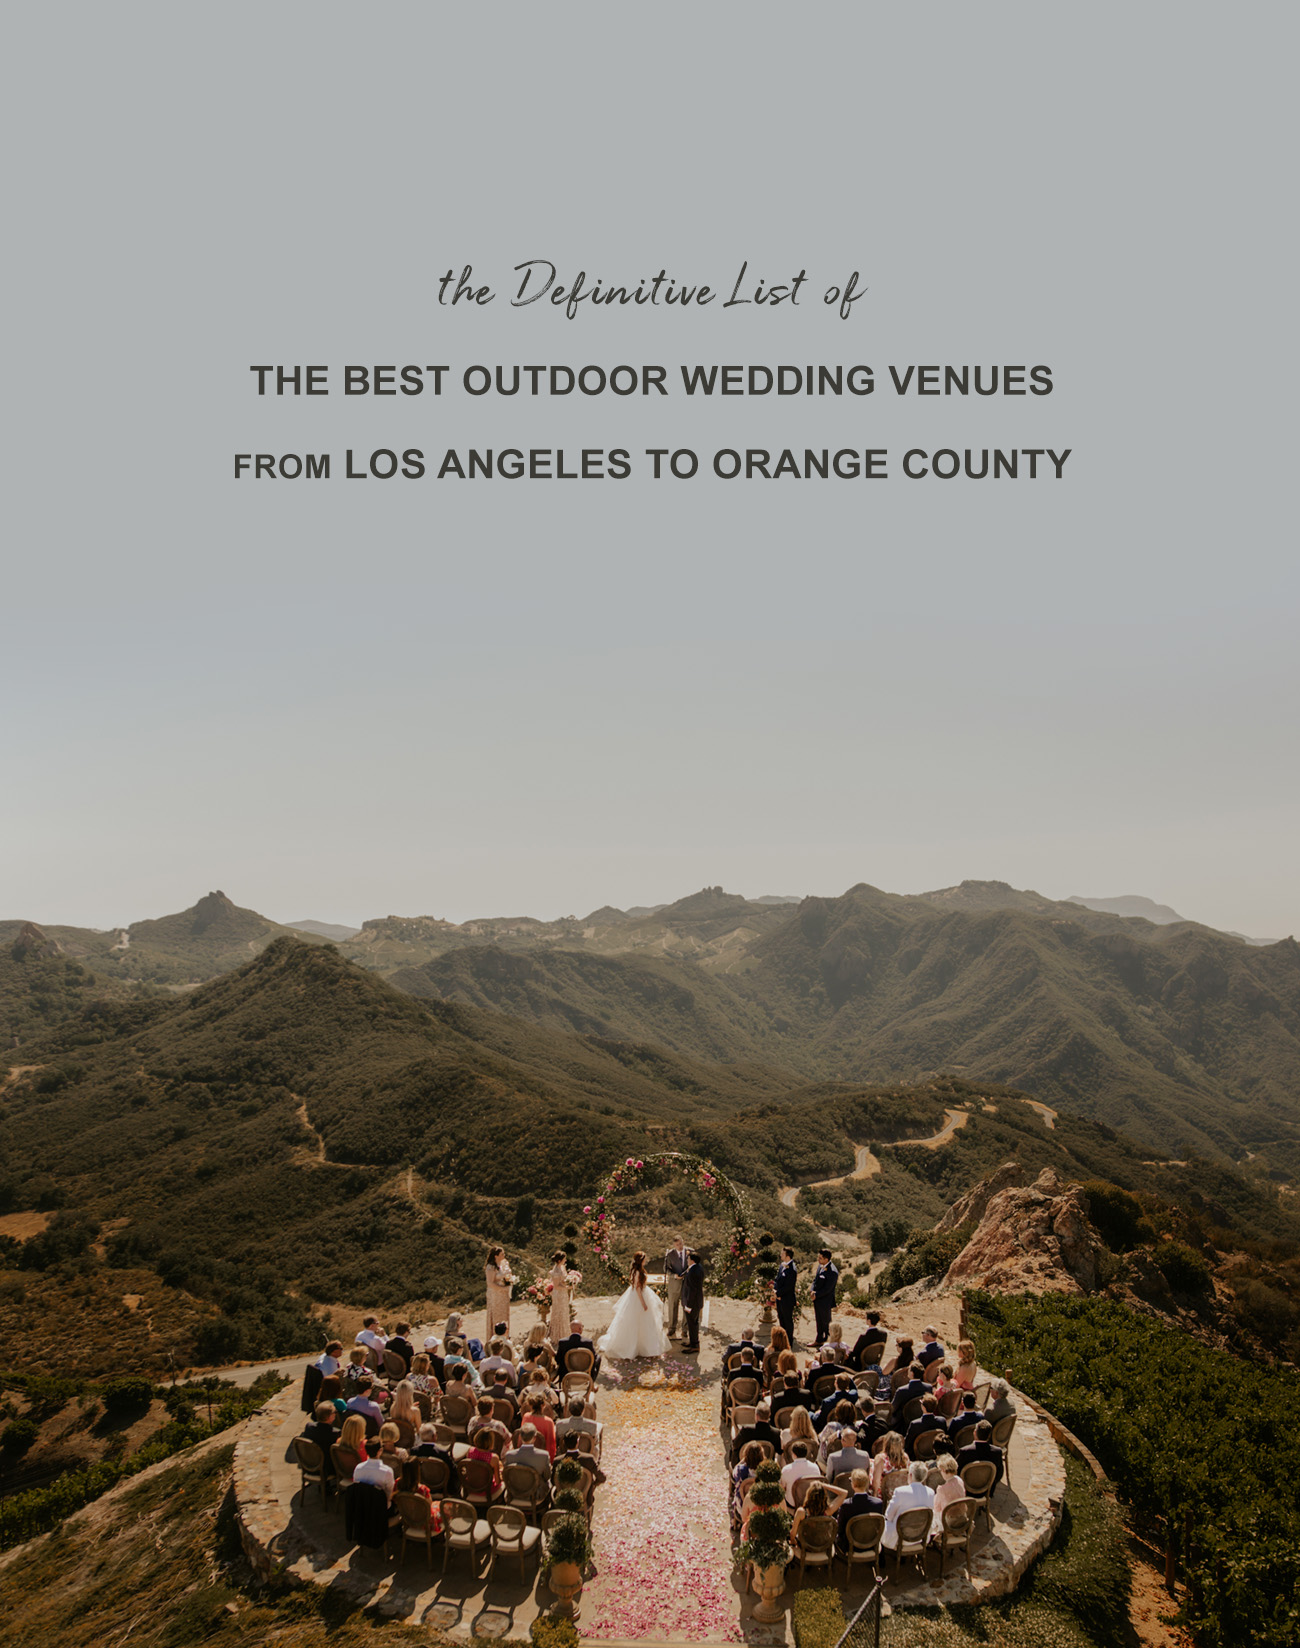 best outdoor wedding venues in los angeles and orange county